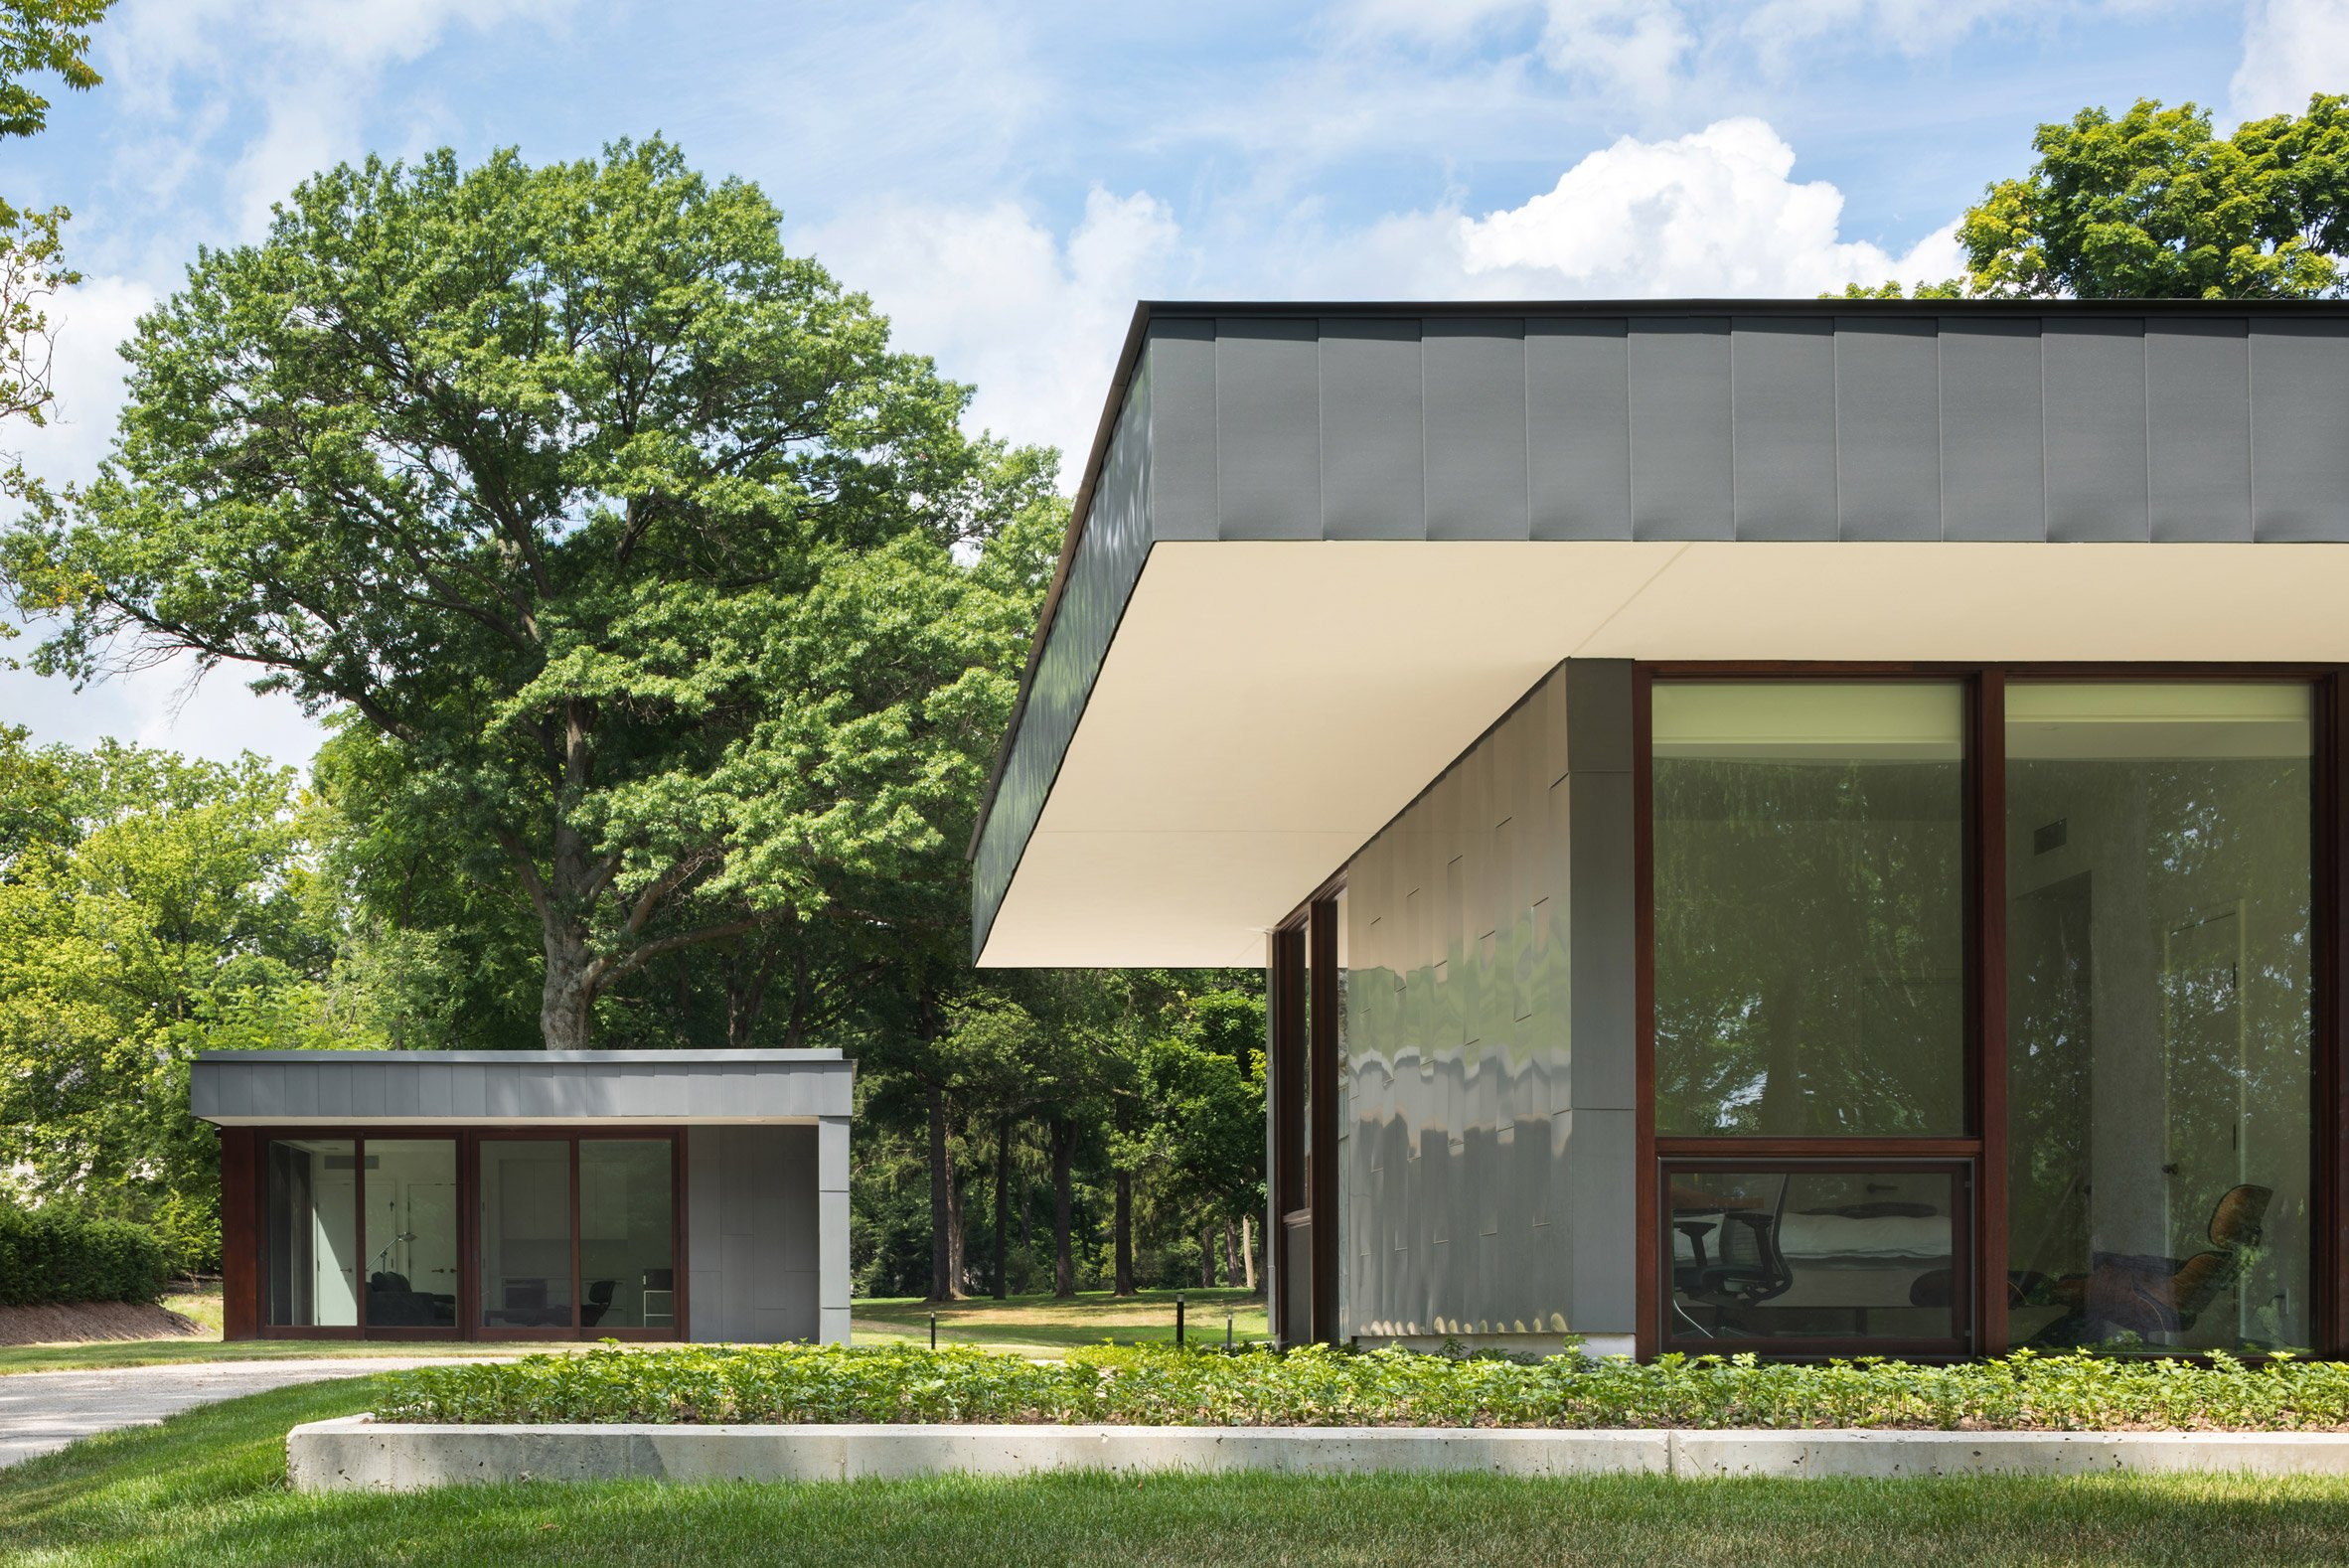 North Penn House by Deborah Berke Partners